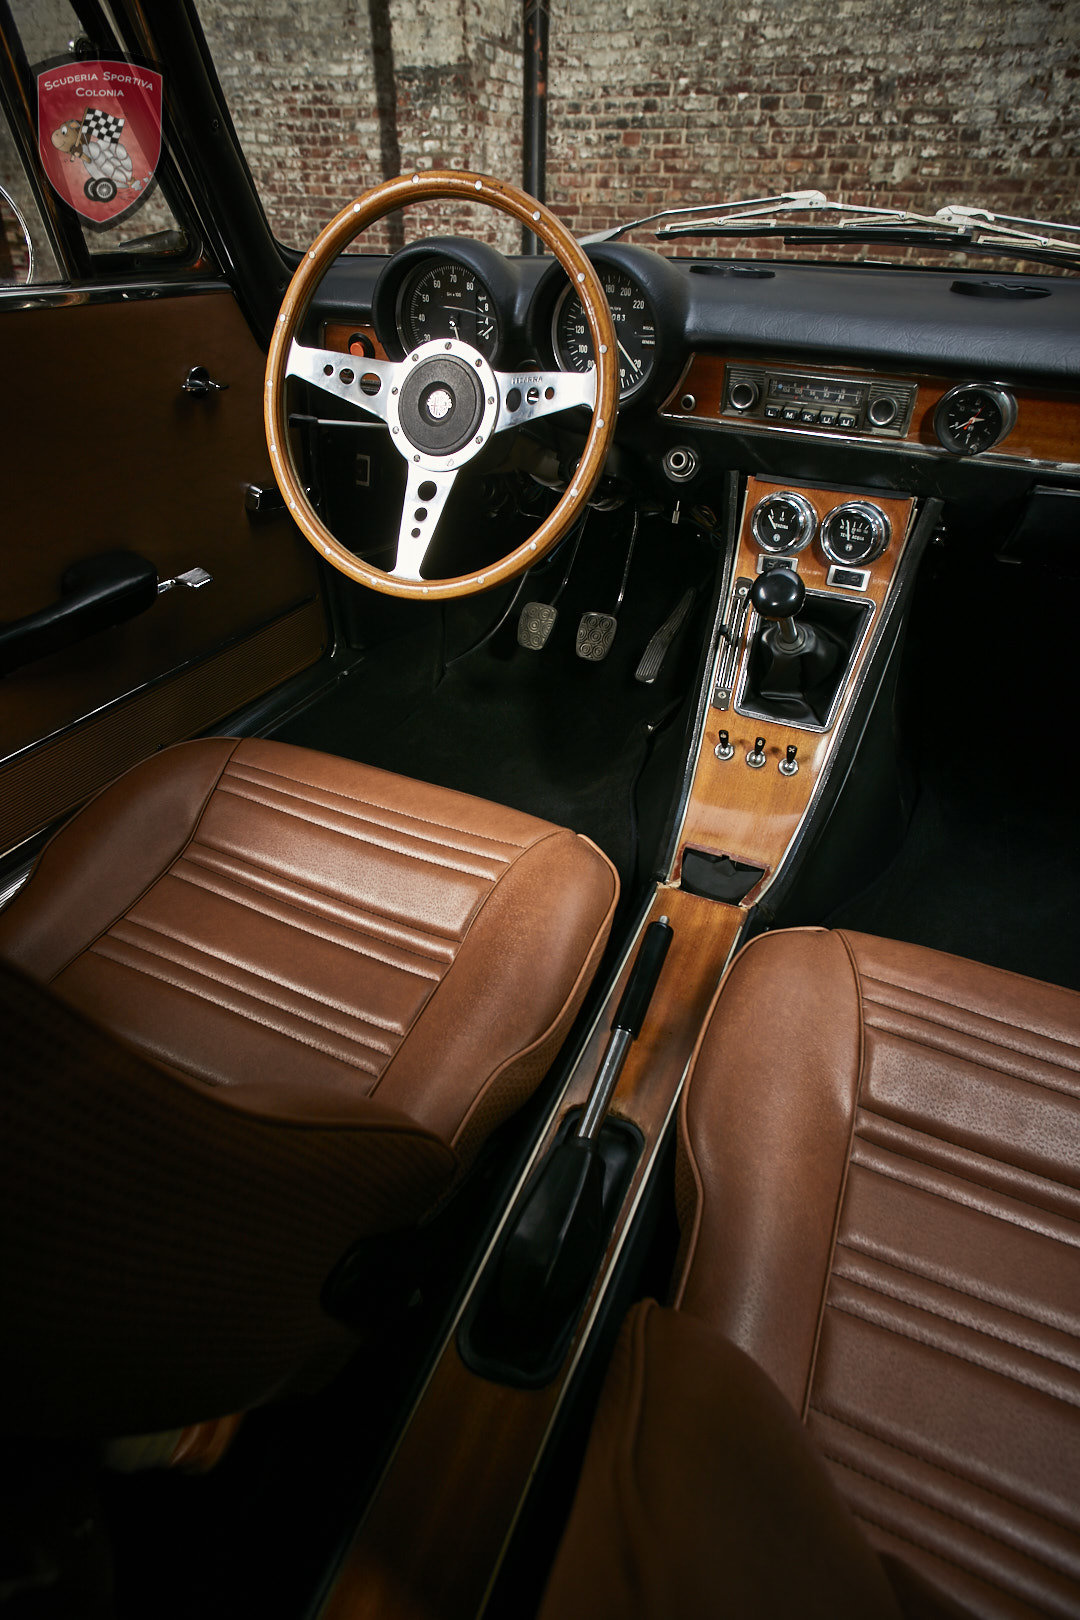 1971 Alfa Romeo 1750 GTV II restored  For Sale (picture 4 of 6)